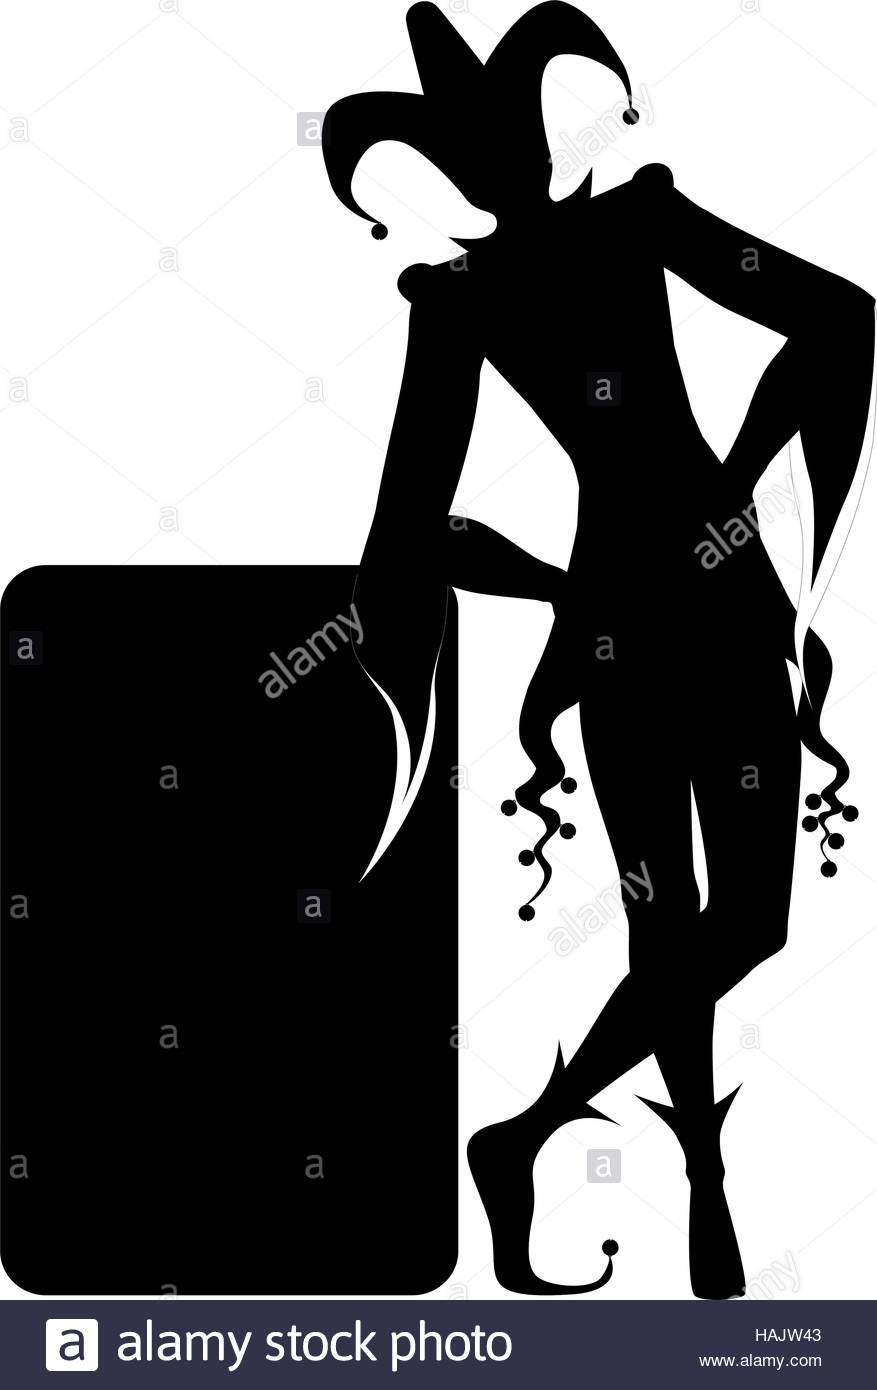 The black joker silhouette and playing card stock image